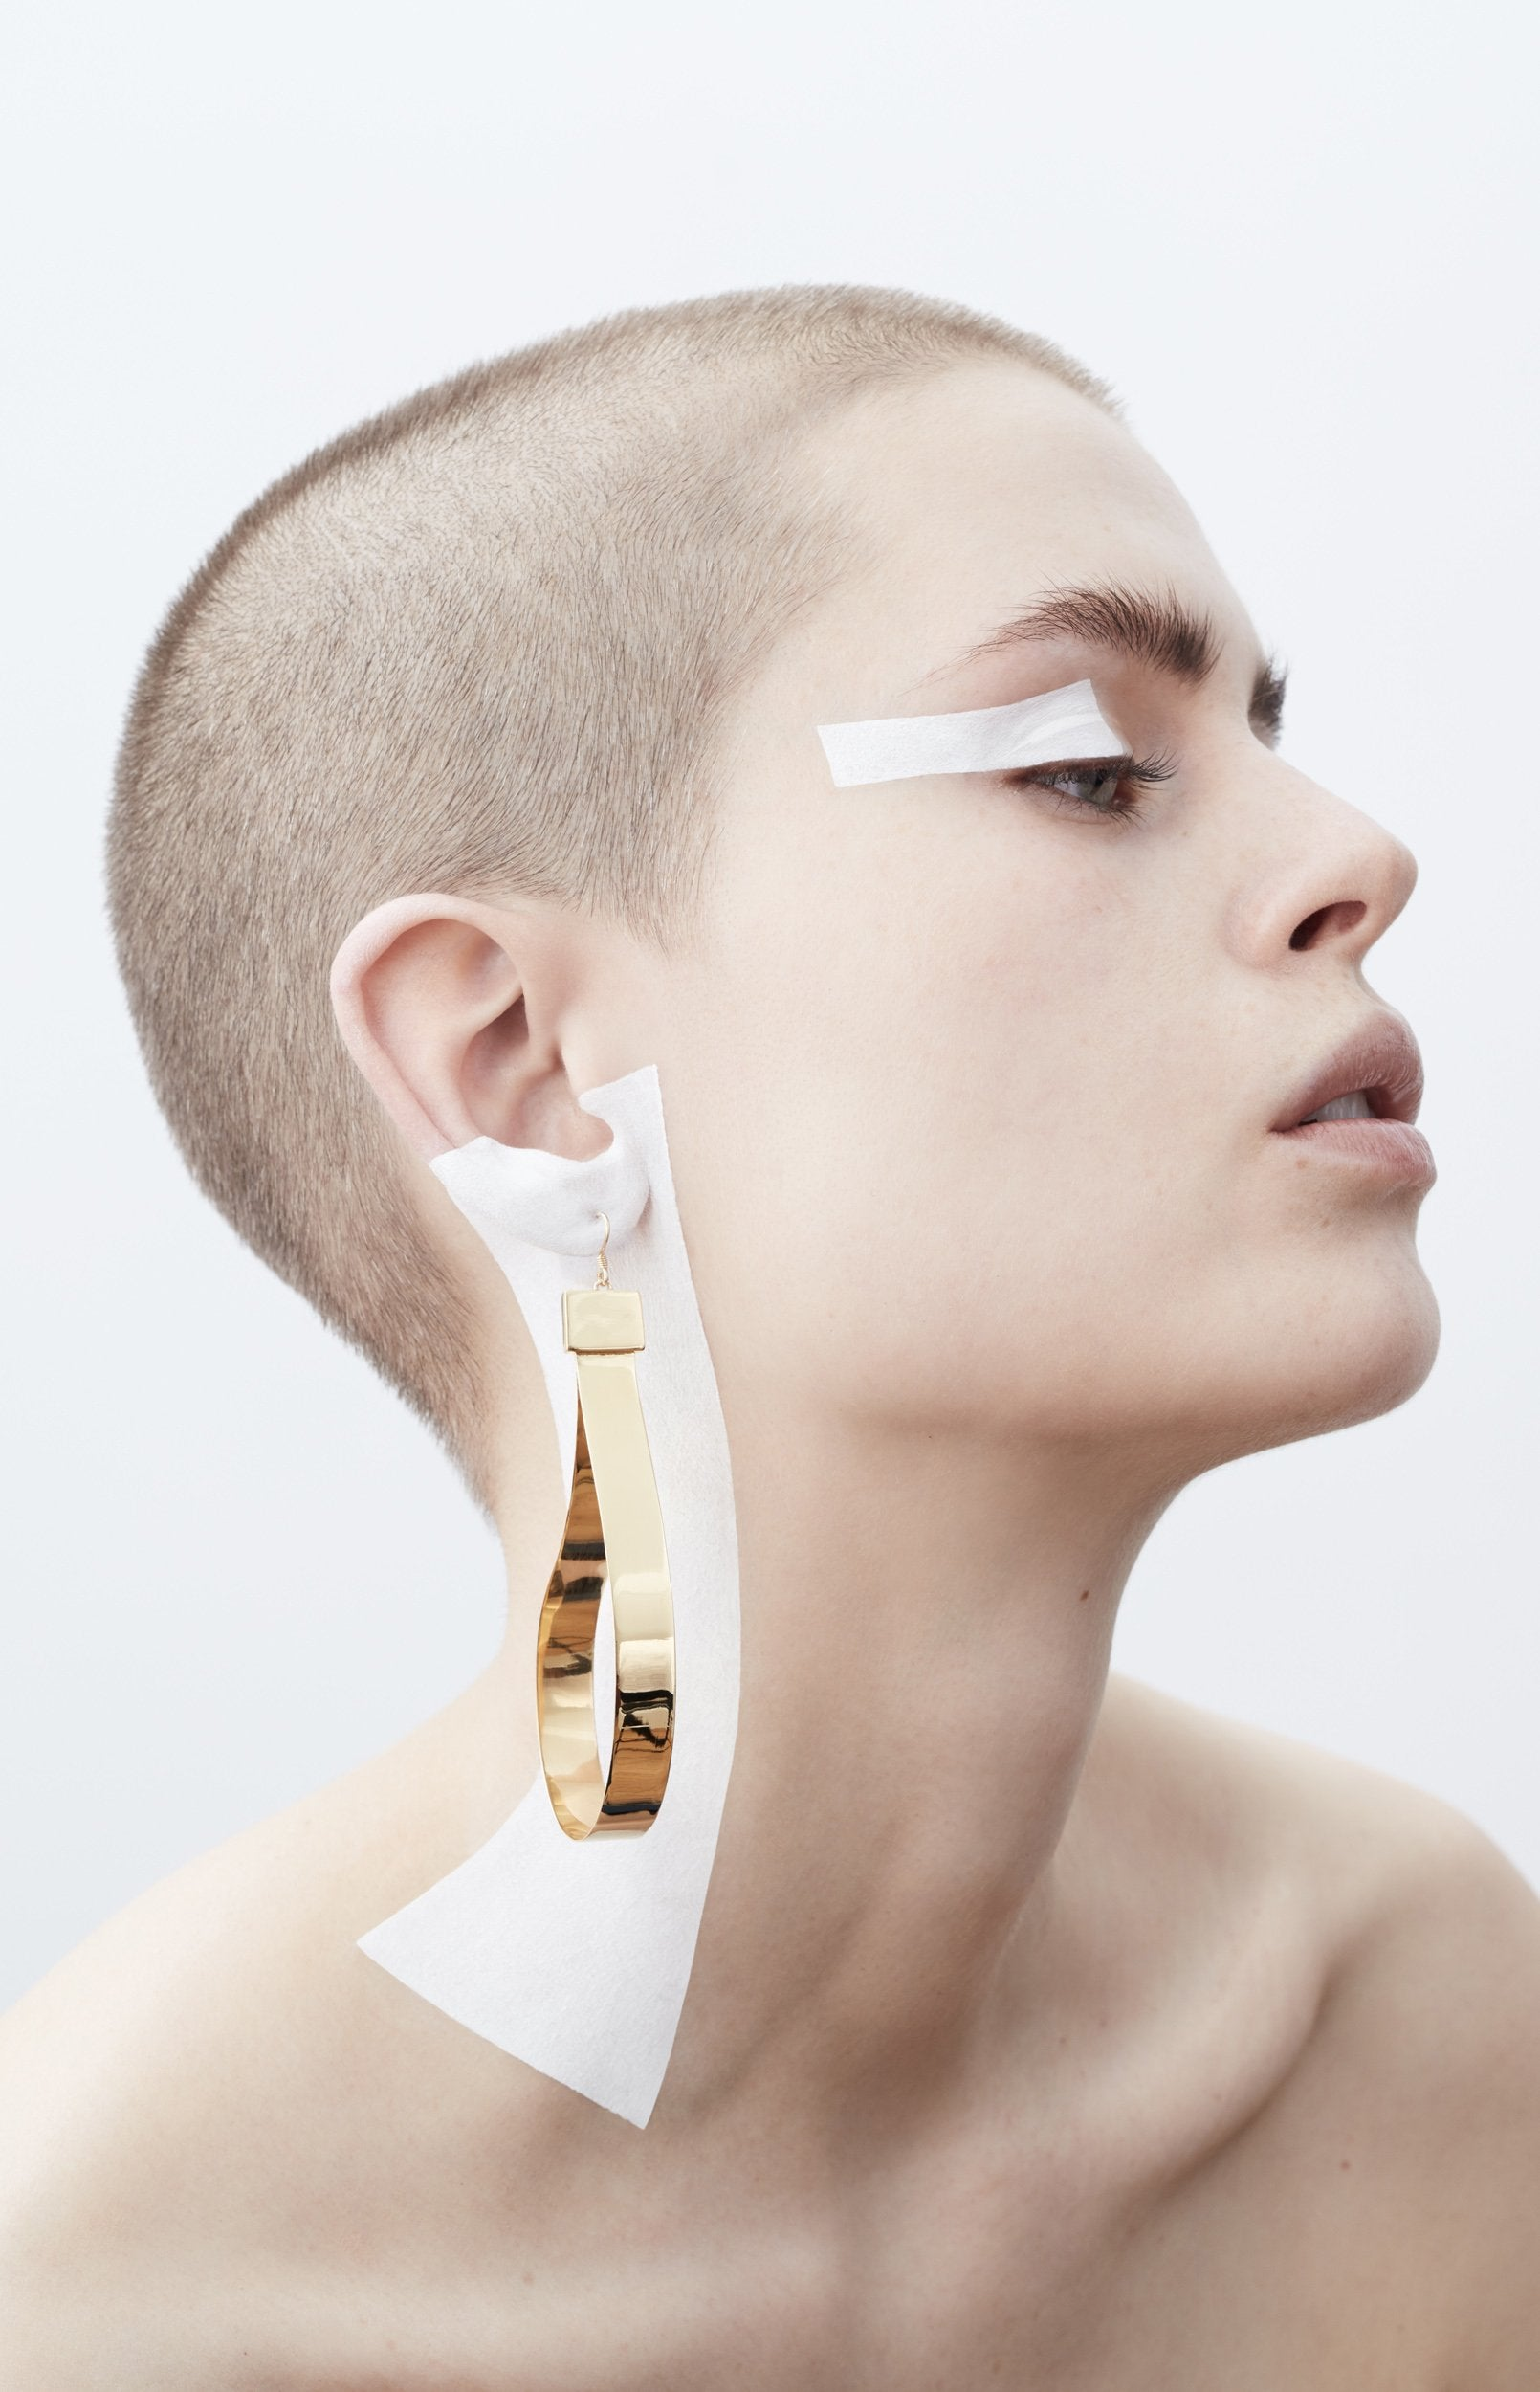 DROP EARRING - MARCEL BEDRO jewelry